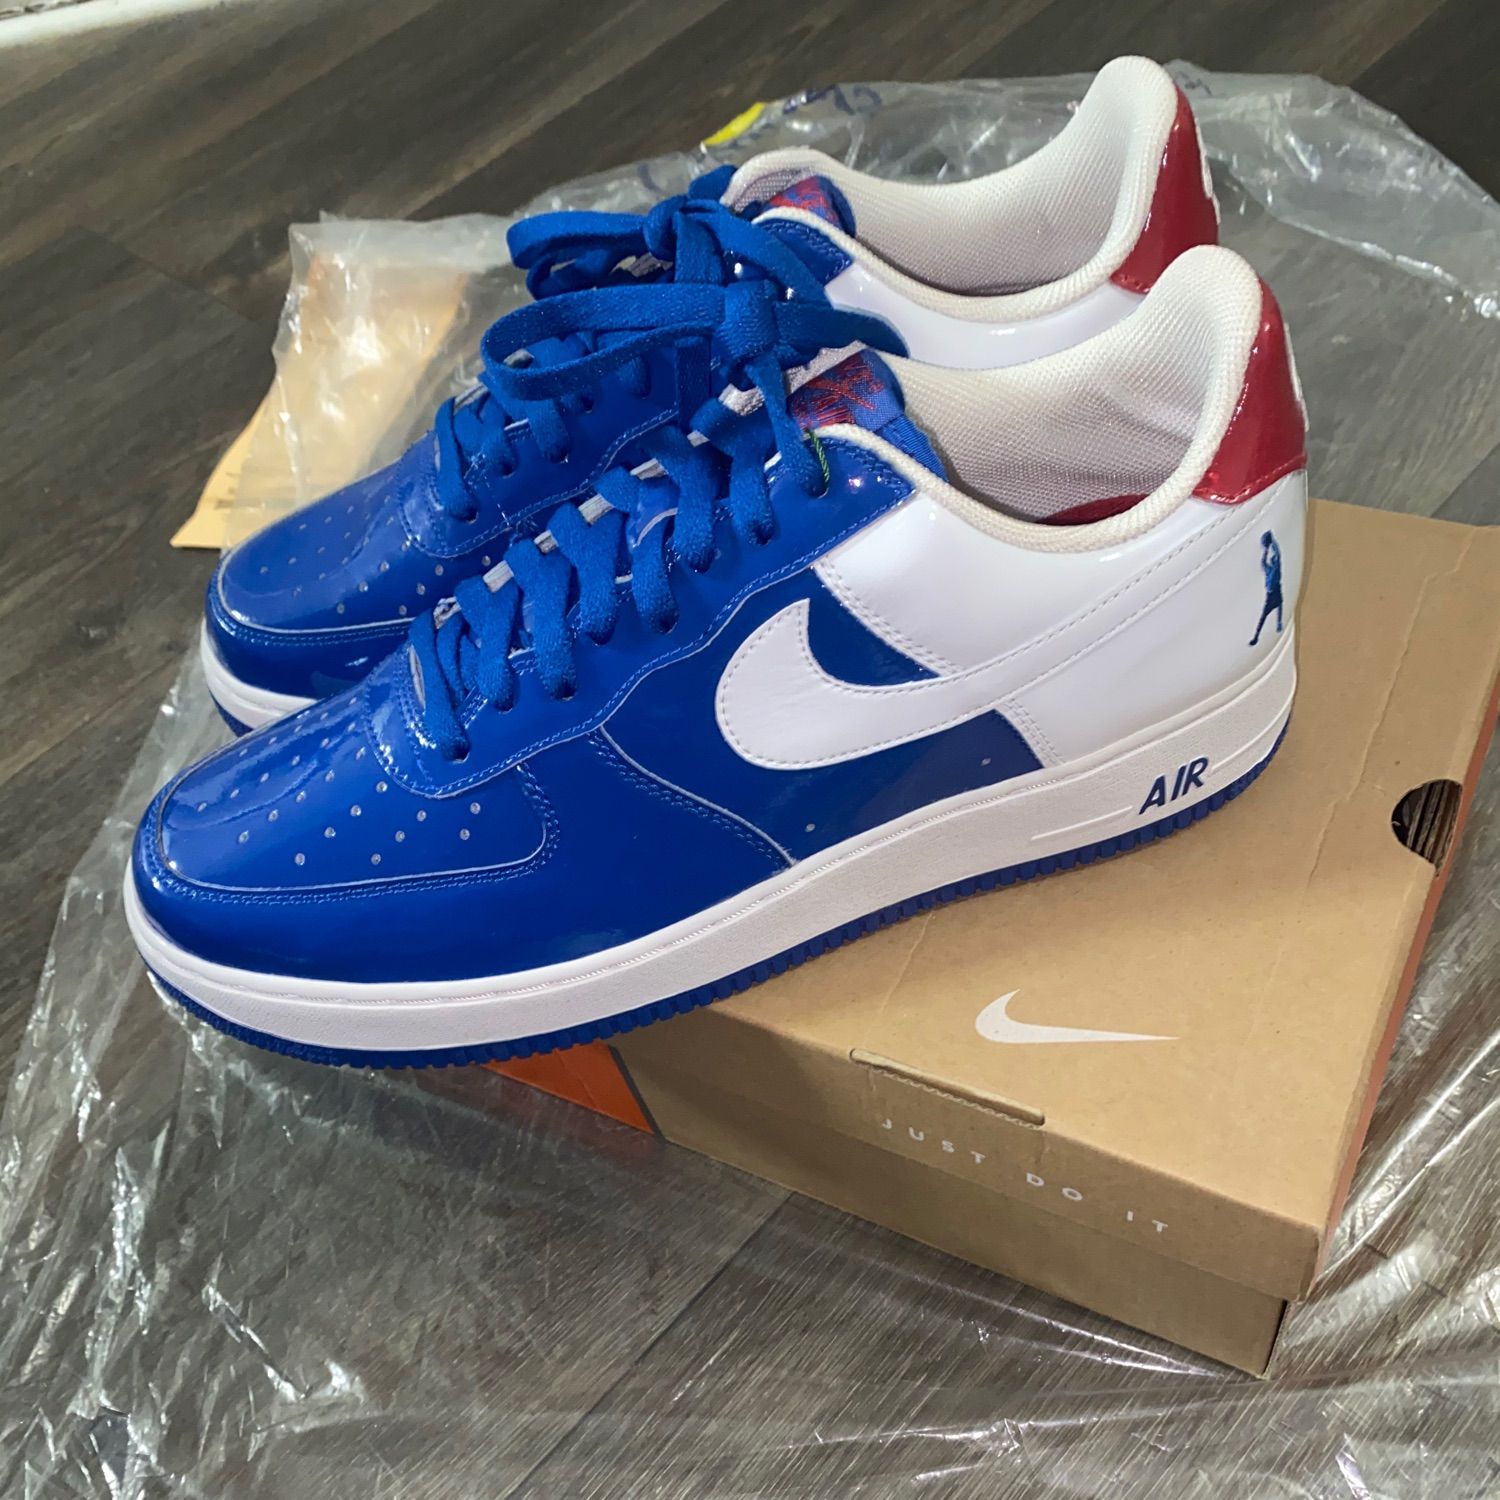 Air Force 1 Sheed Low Blue Jay